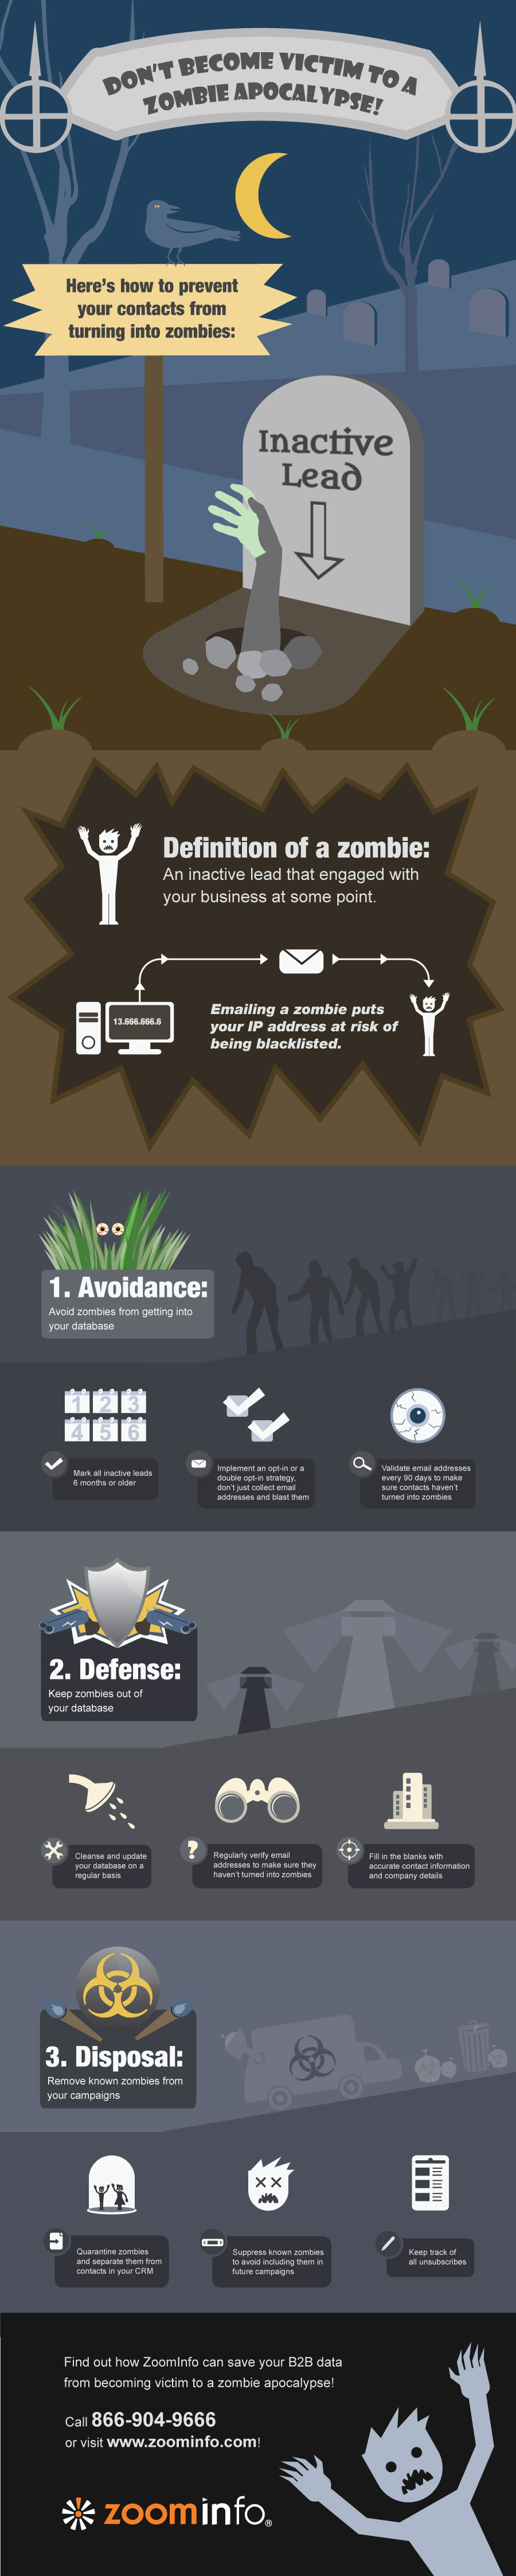 Infographic: Improve Your Email Campaigns By Removing Zombies